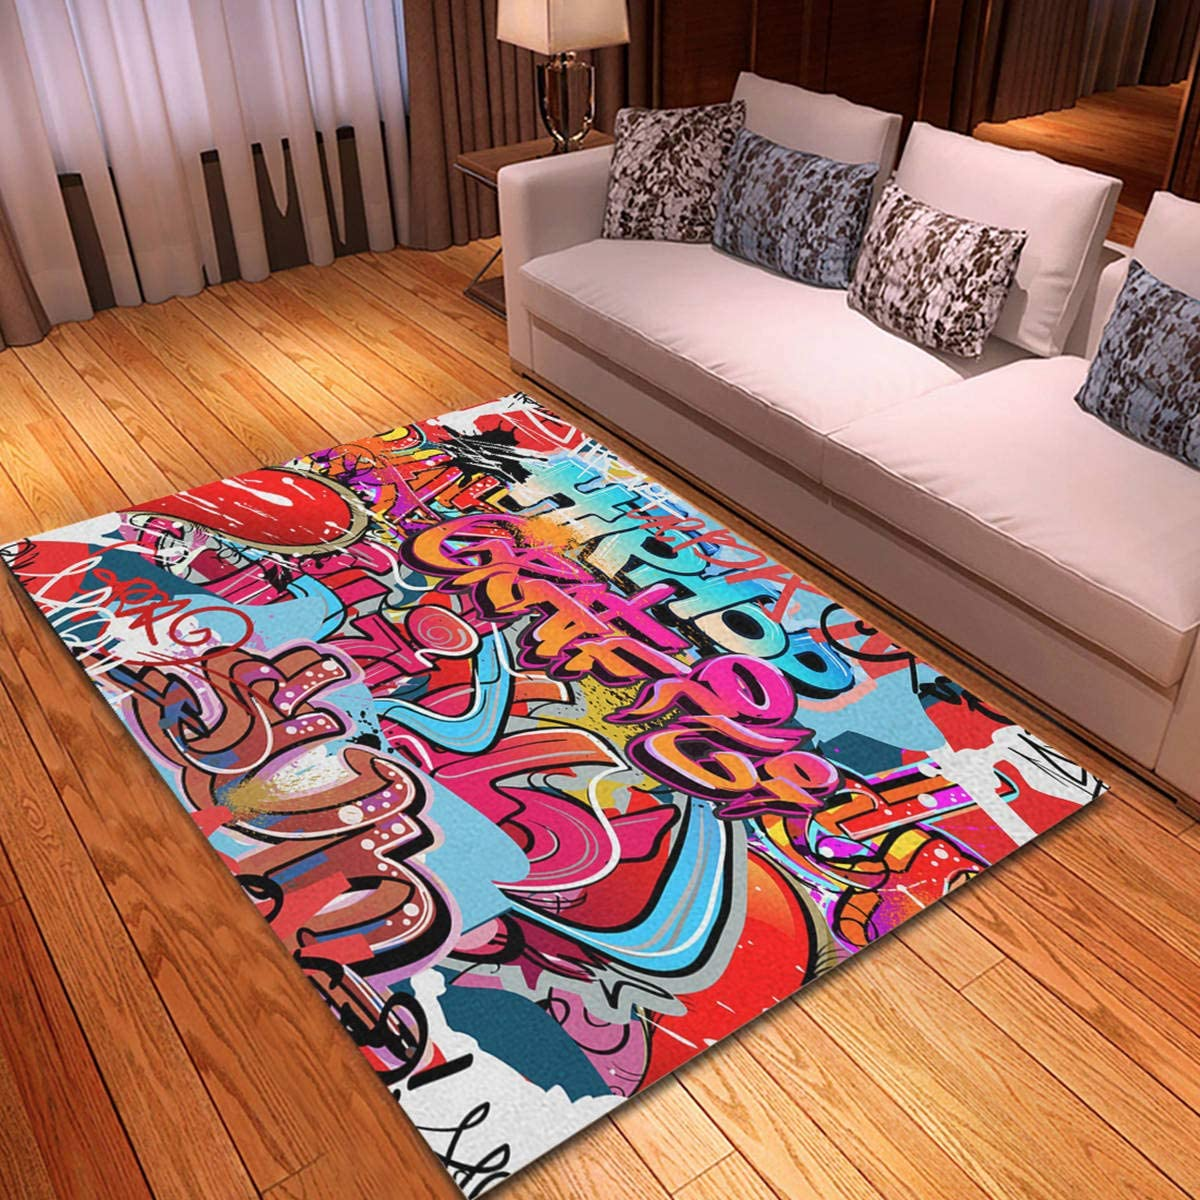 rouihot Non-Slip Area Rug 4'x 6' Funky Challenge the Denver Mall lowest price of Japan ☆ Hop Hip Wall Graffity